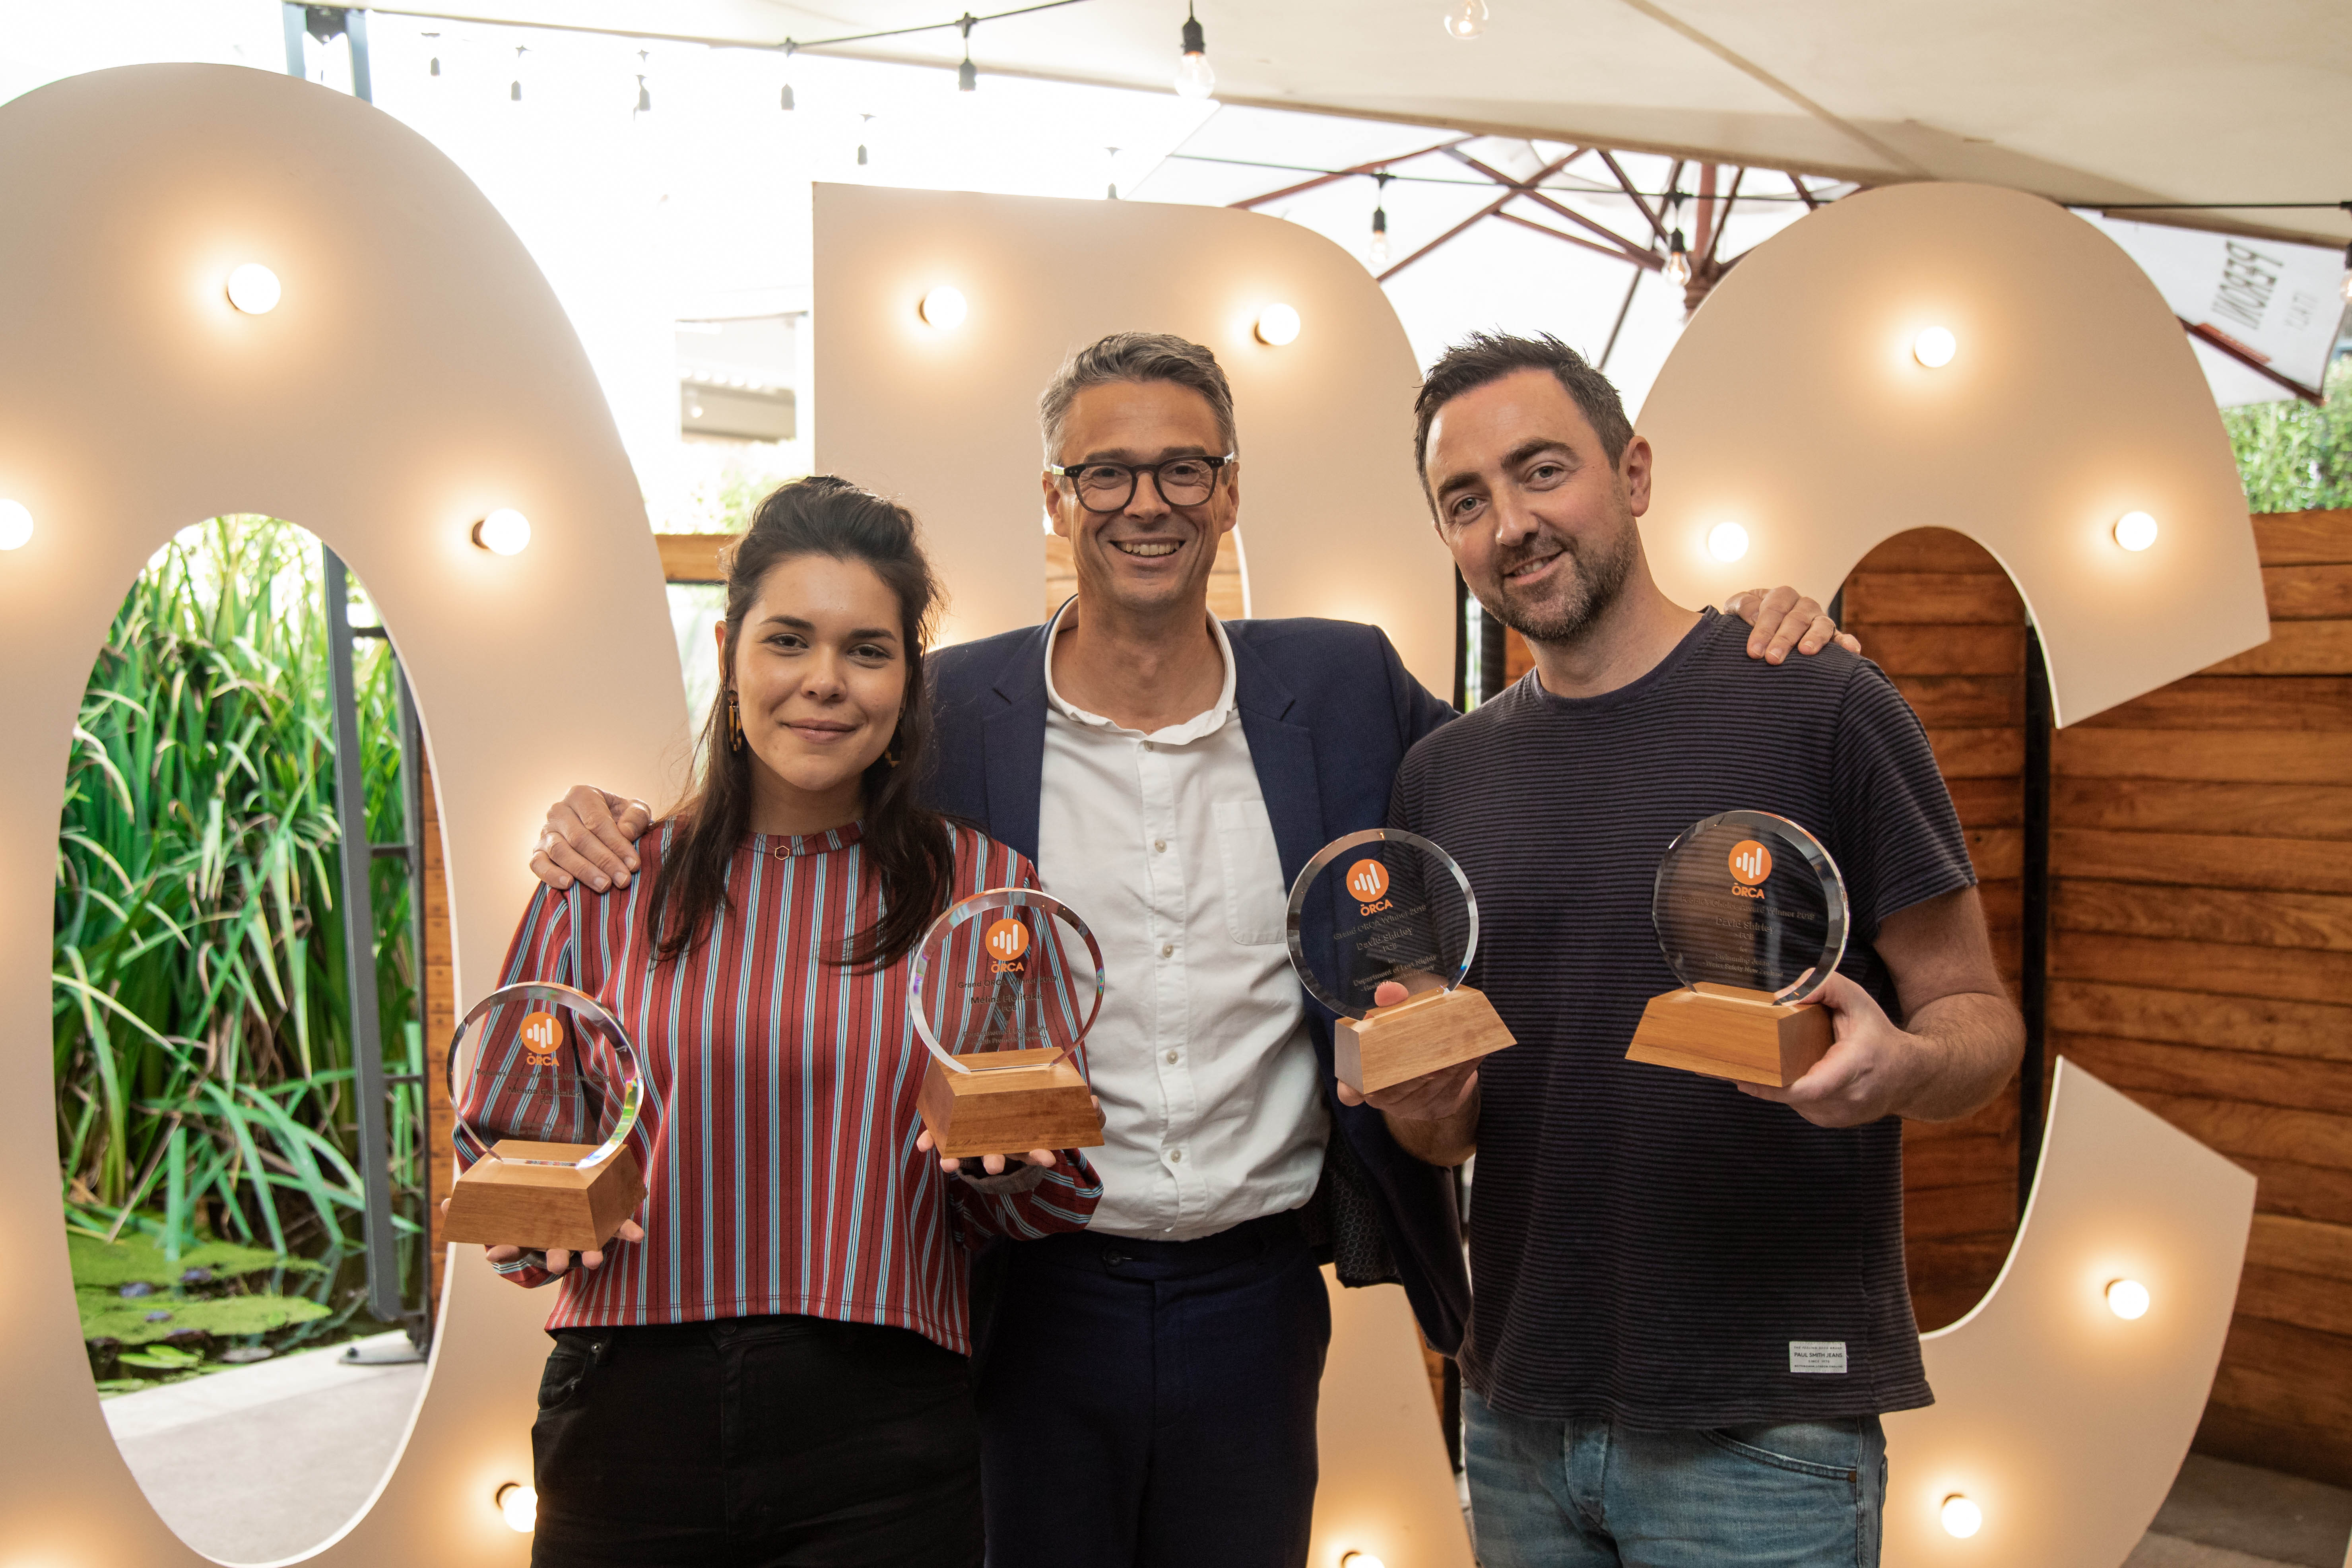 FCB announced as winners of the coveted Grand ORCA and People's Choice Award for 2019 ORCA